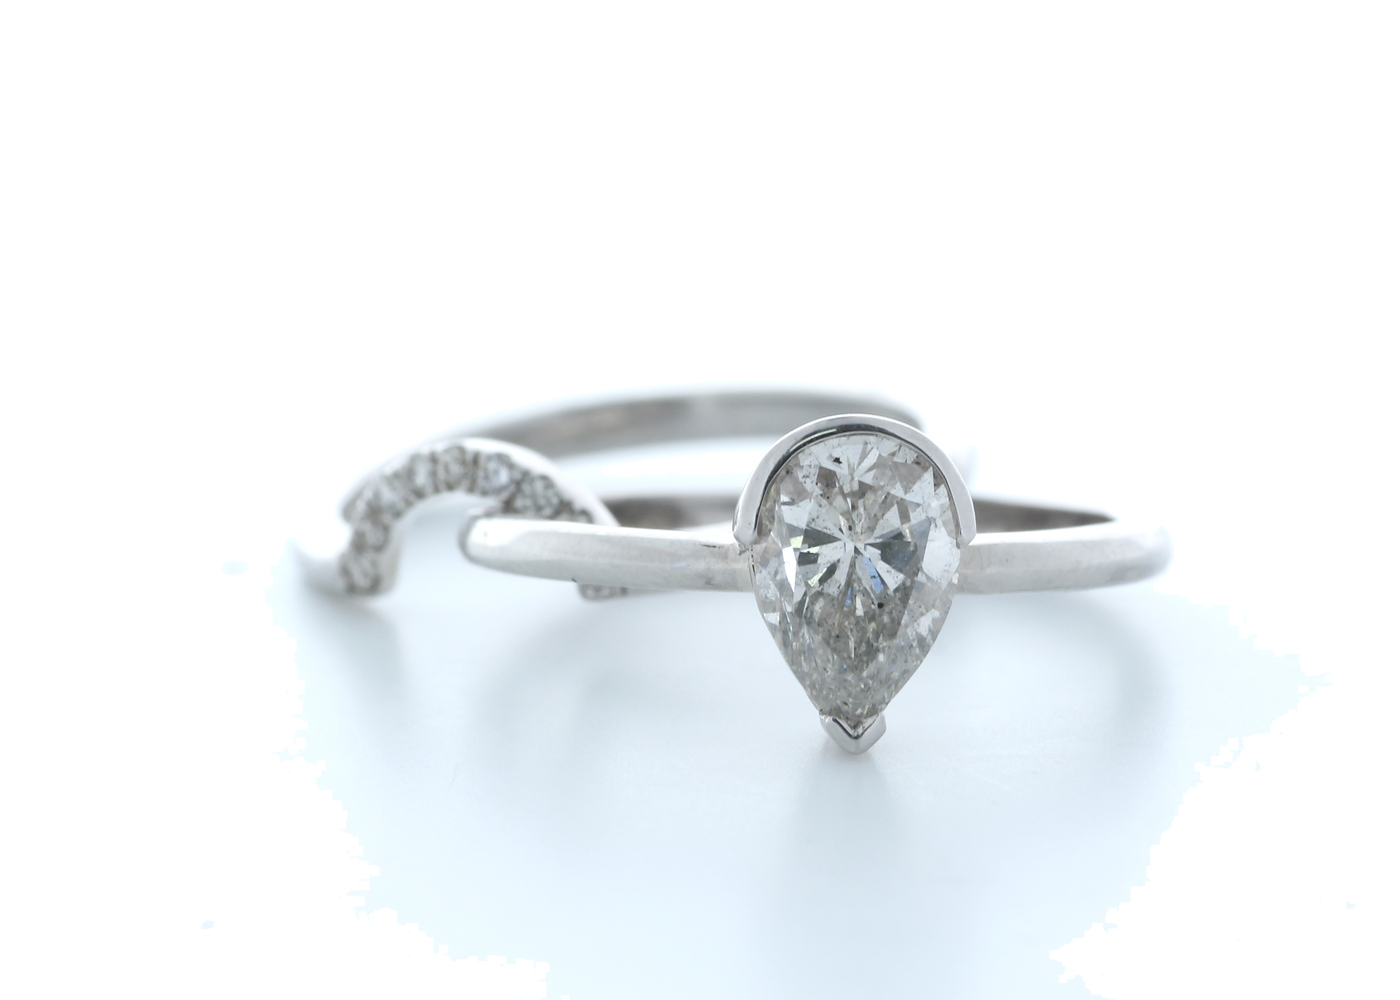 18ct White Gold Pear Shape Diamond Ring With Matching Band 1.16 (1.07) Carats - Image 2 of 4